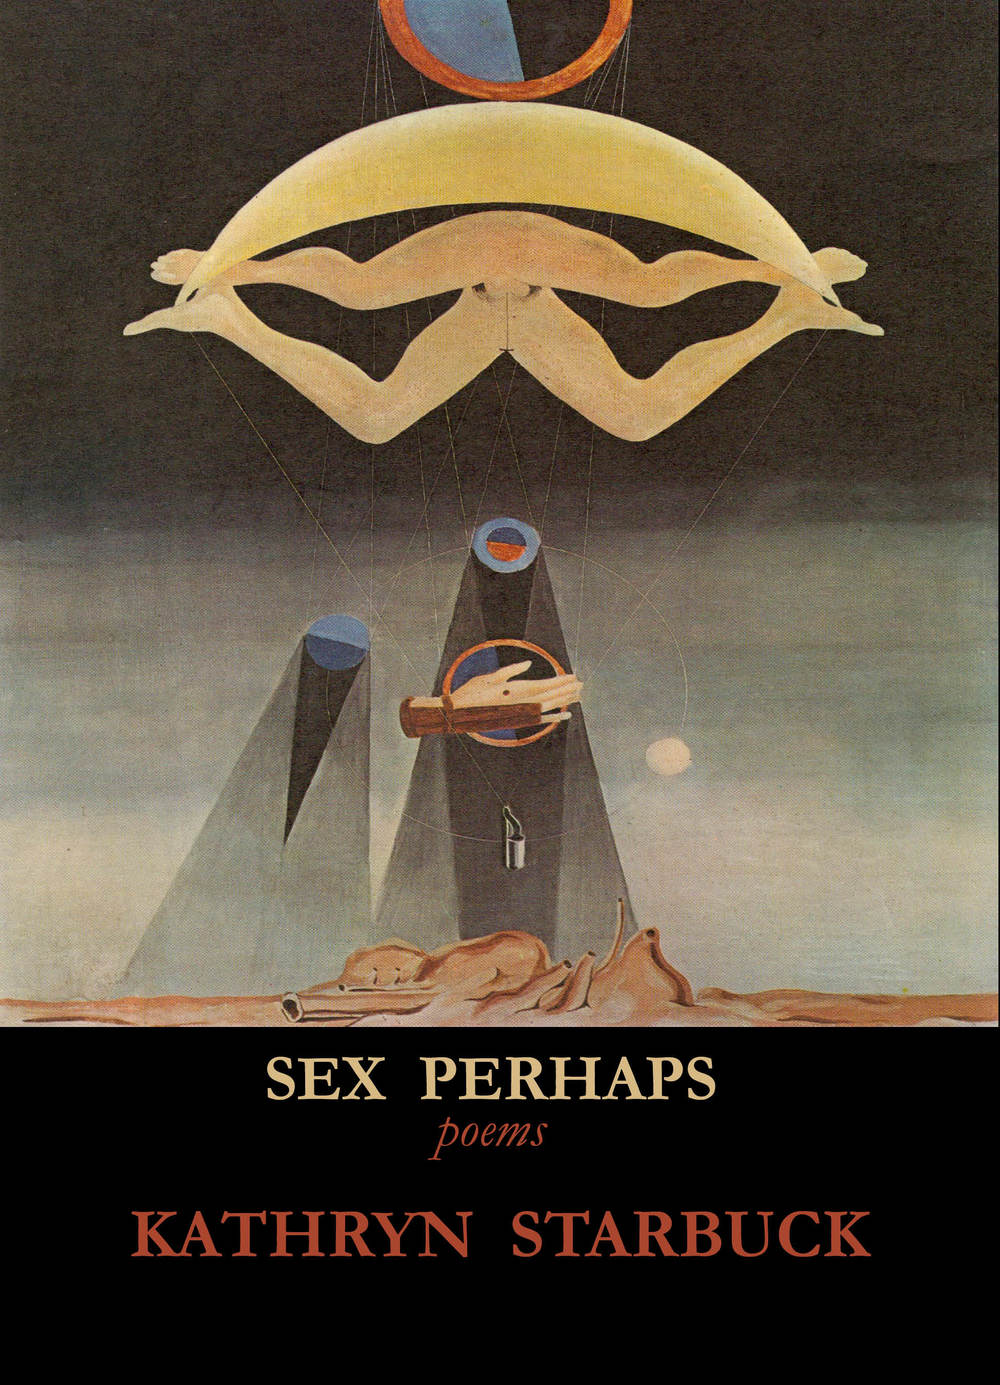 sex perhaps cover.jpg